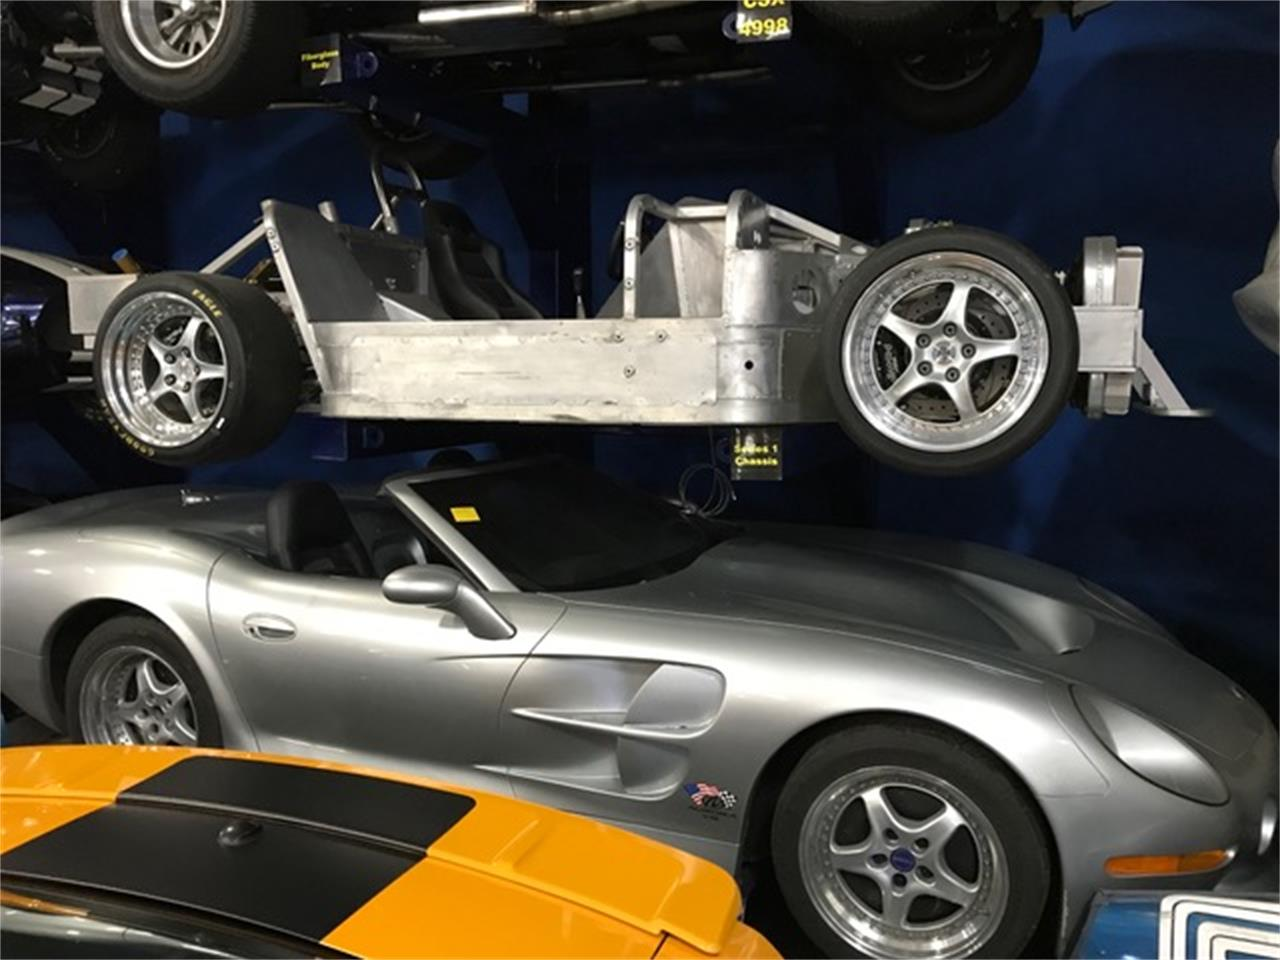 1998 Shelby Series 1 (CC-1185323) for sale in Napa Valley, California